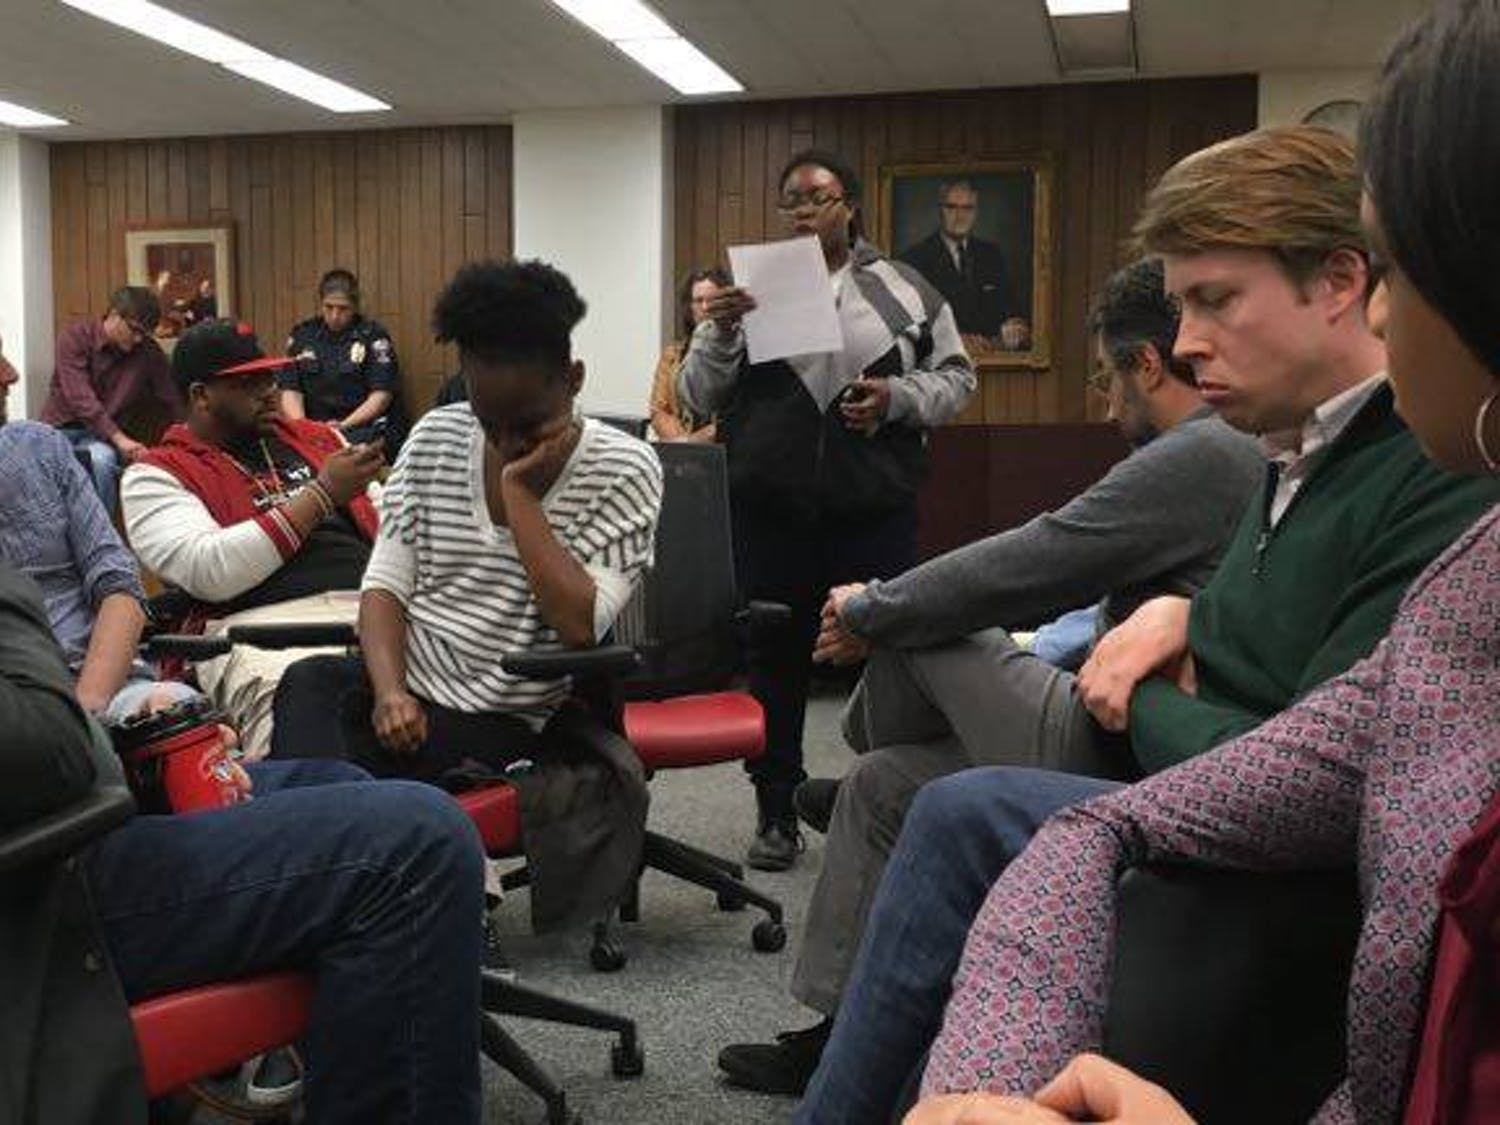 After a recent arrest of a UW-Madison student, members ofUWPD spoke to students and professors in Vilas Hall Tuesday.